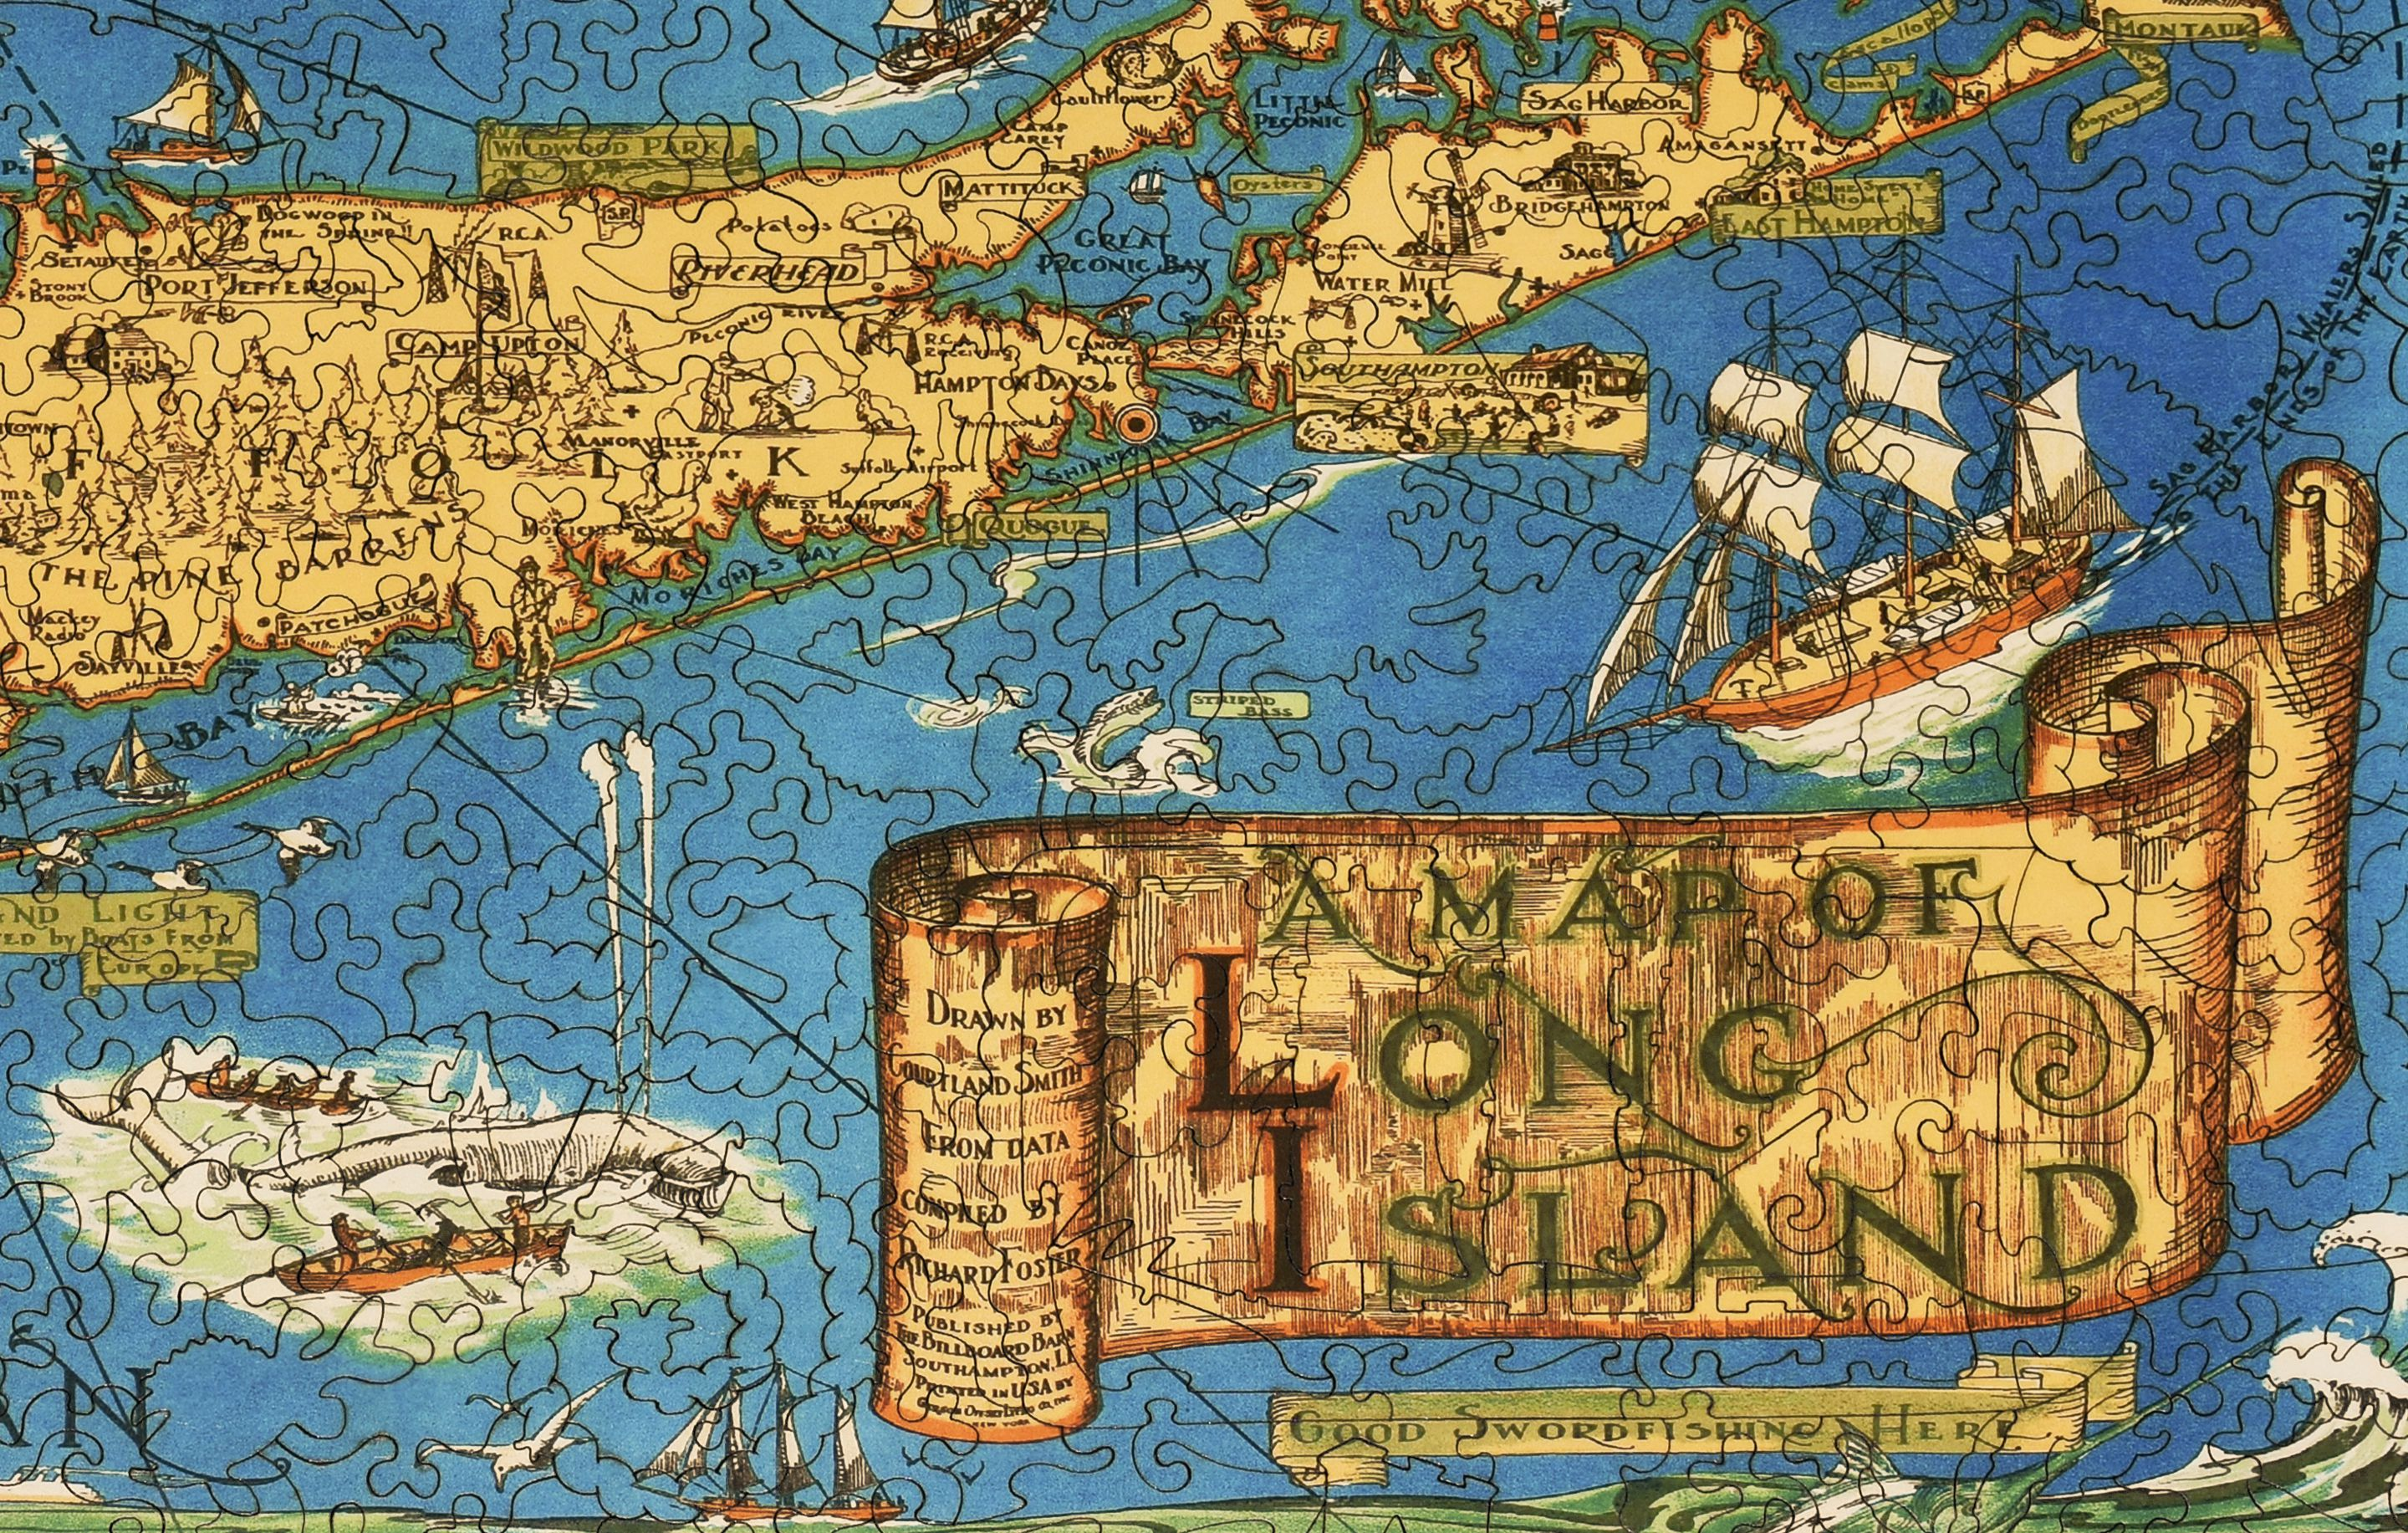 map of long island wooden jigsaw puzzle liberty puzzles made in the usa. Black Bedroom Furniture Sets. Home Design Ideas